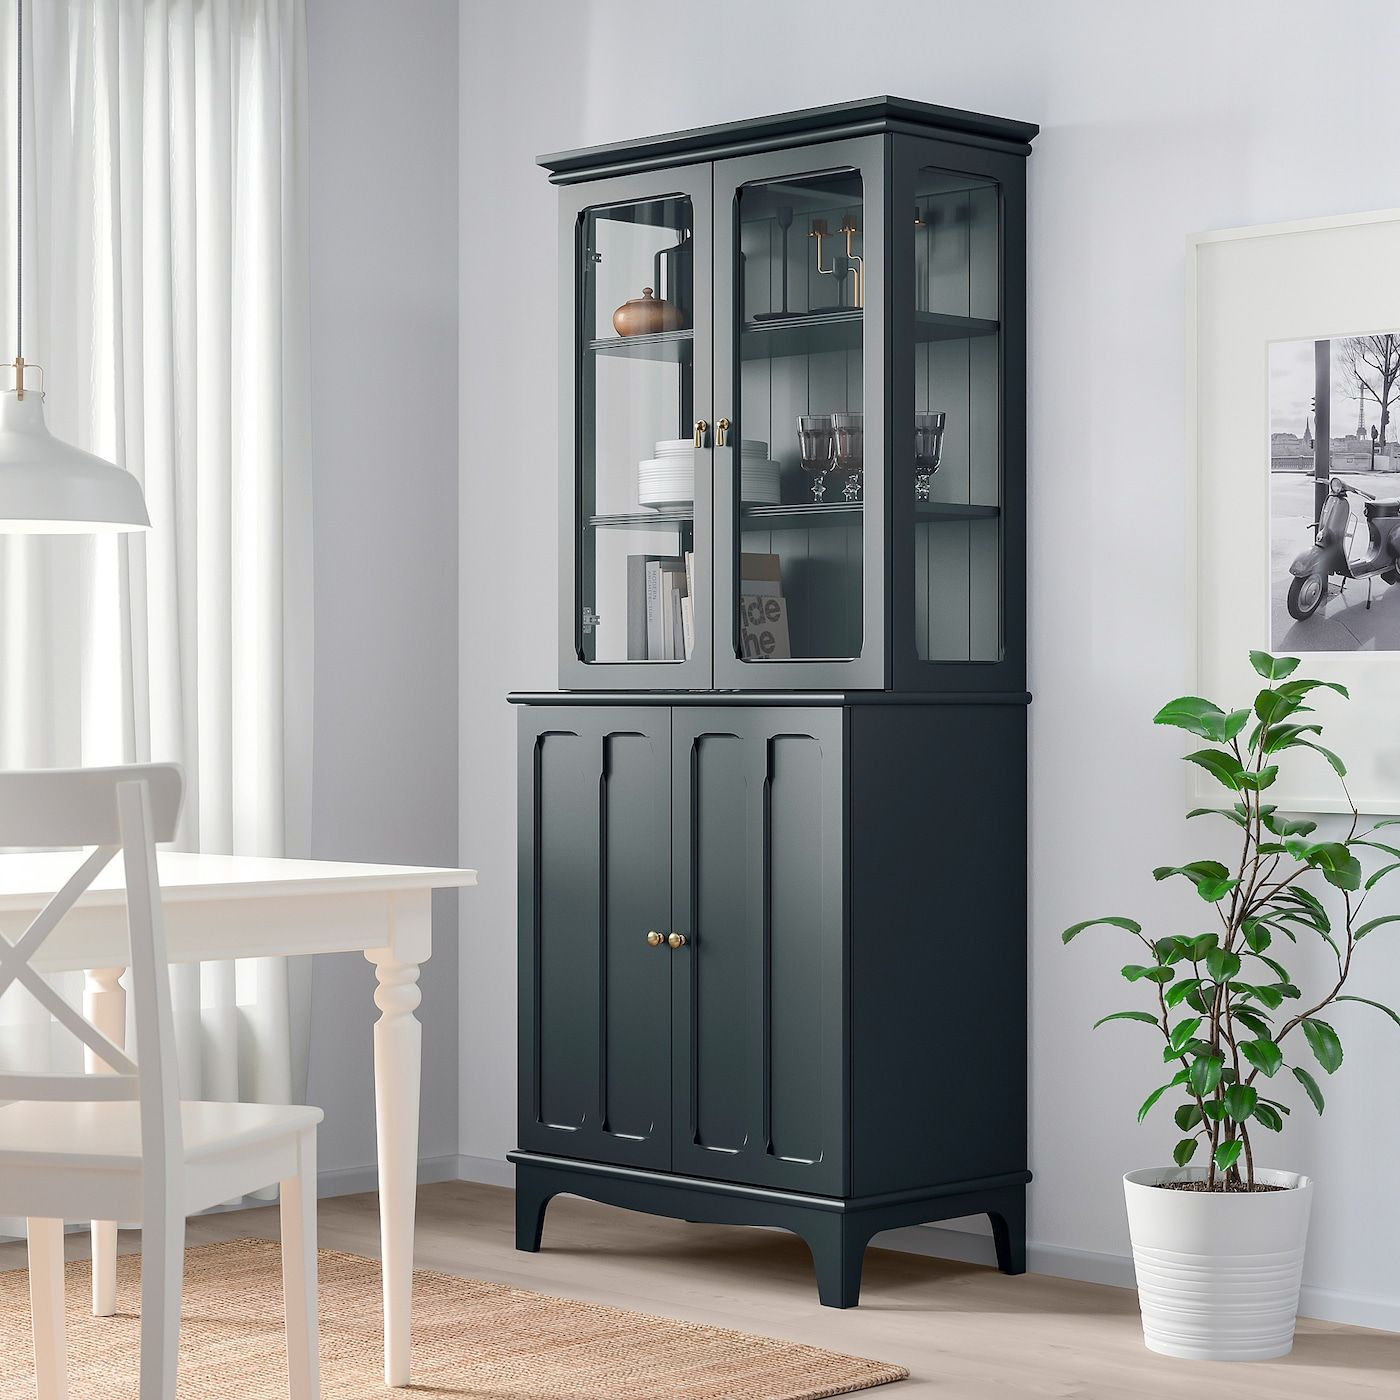 Ikea Lommarp Cabinet With Glass Doors Dark Blue Green In 2020